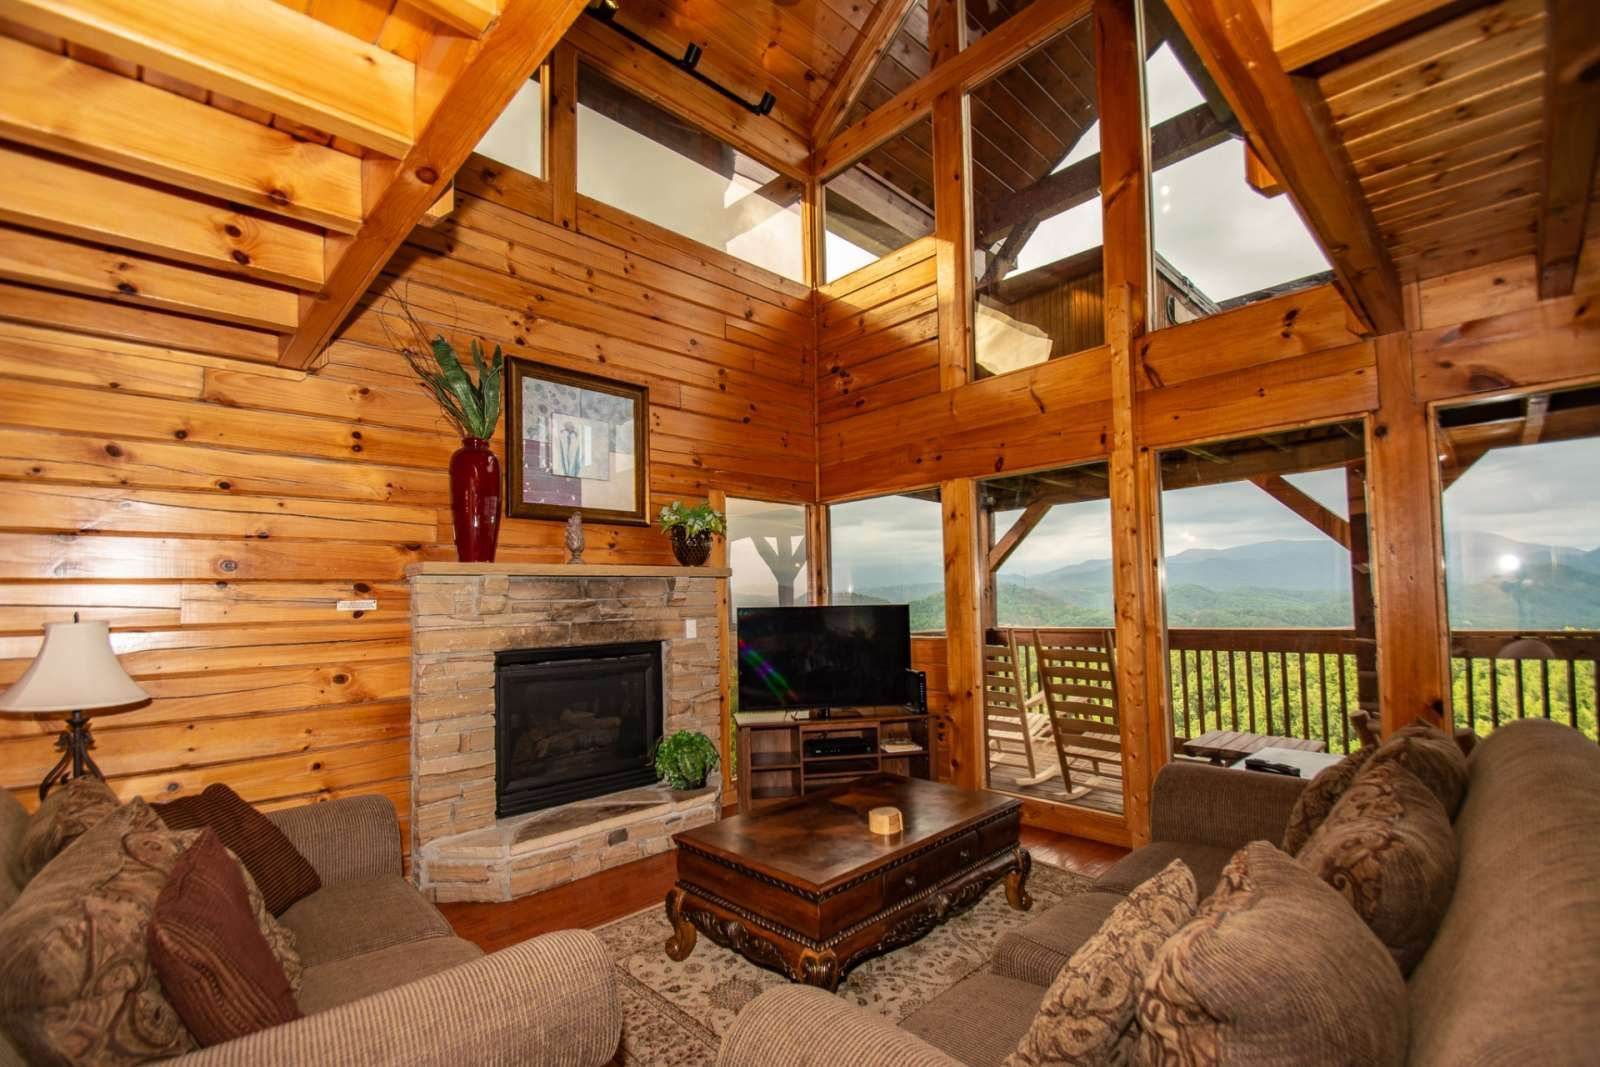 Sevierville vacation rental amazing mountain city views great loft area seasonal pool hot tub 5 miles to dollywood free fun cabin rental on